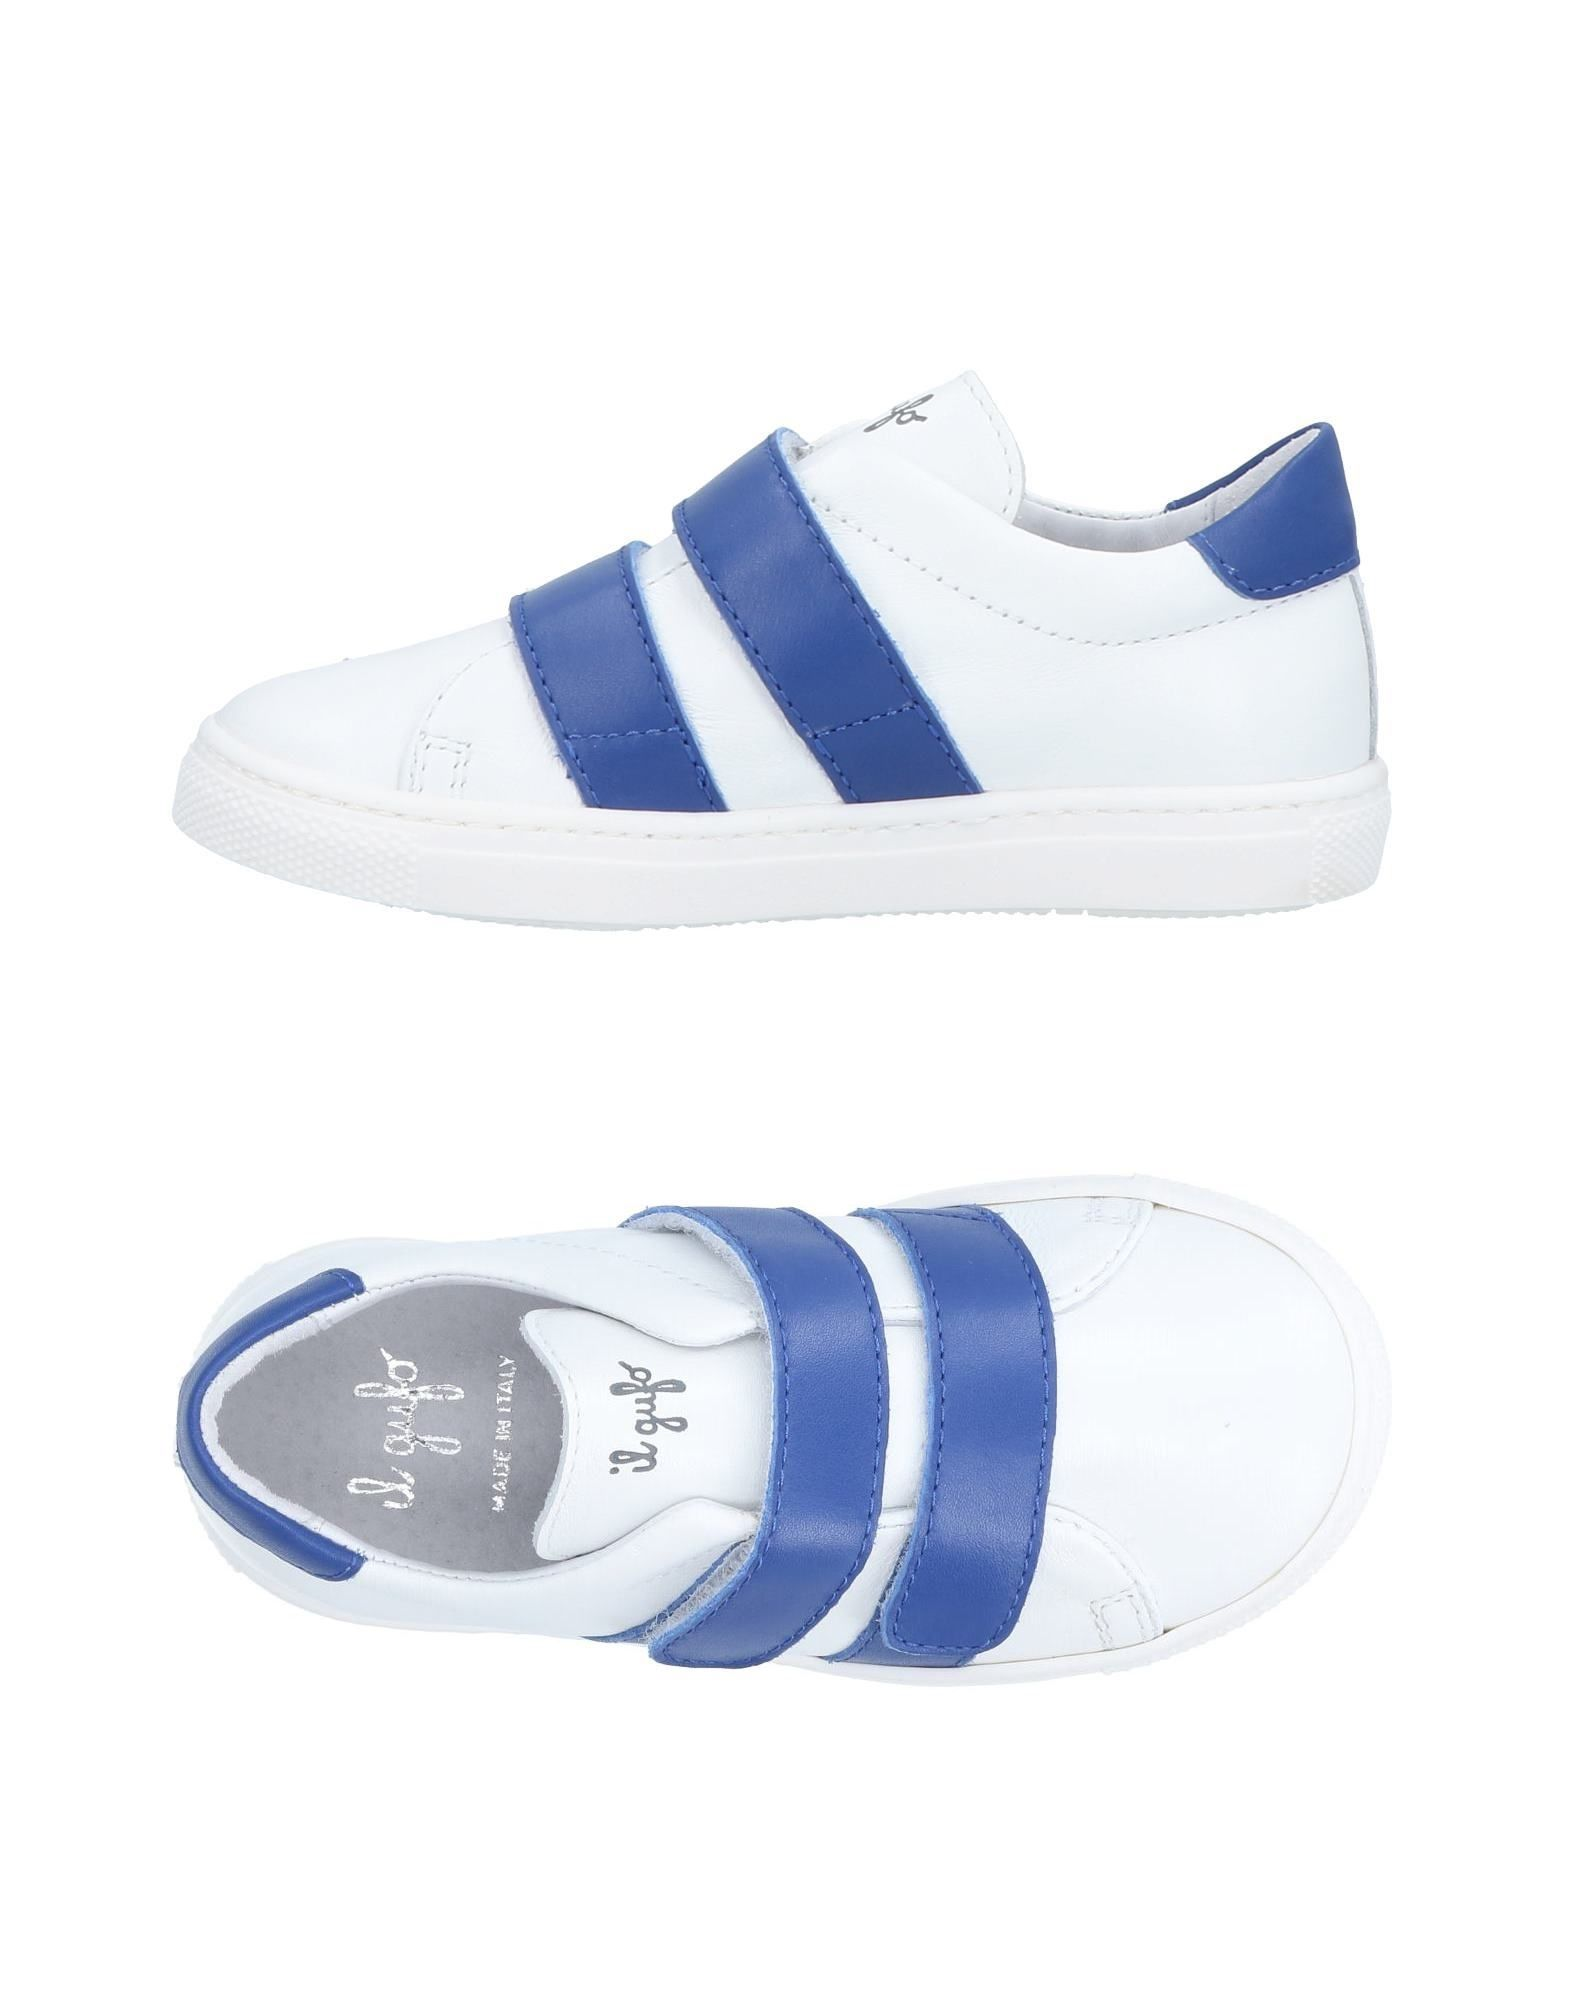 IL GUFO | IL GUFO Low-tops & sneakers 11449684 | Goxip